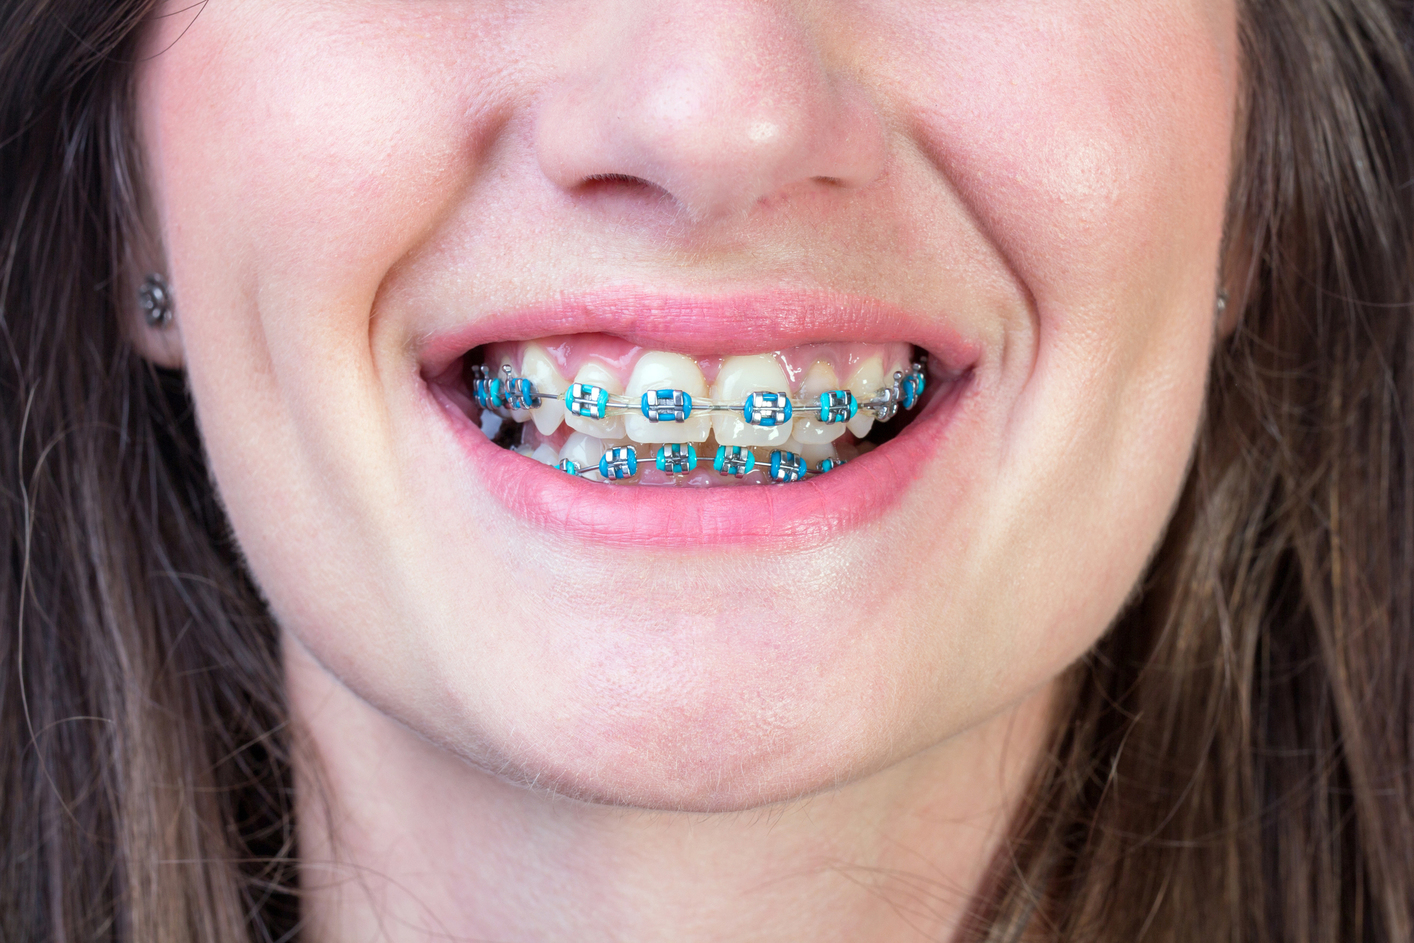 Colours of Braces That Dental Practices May Give to Patients